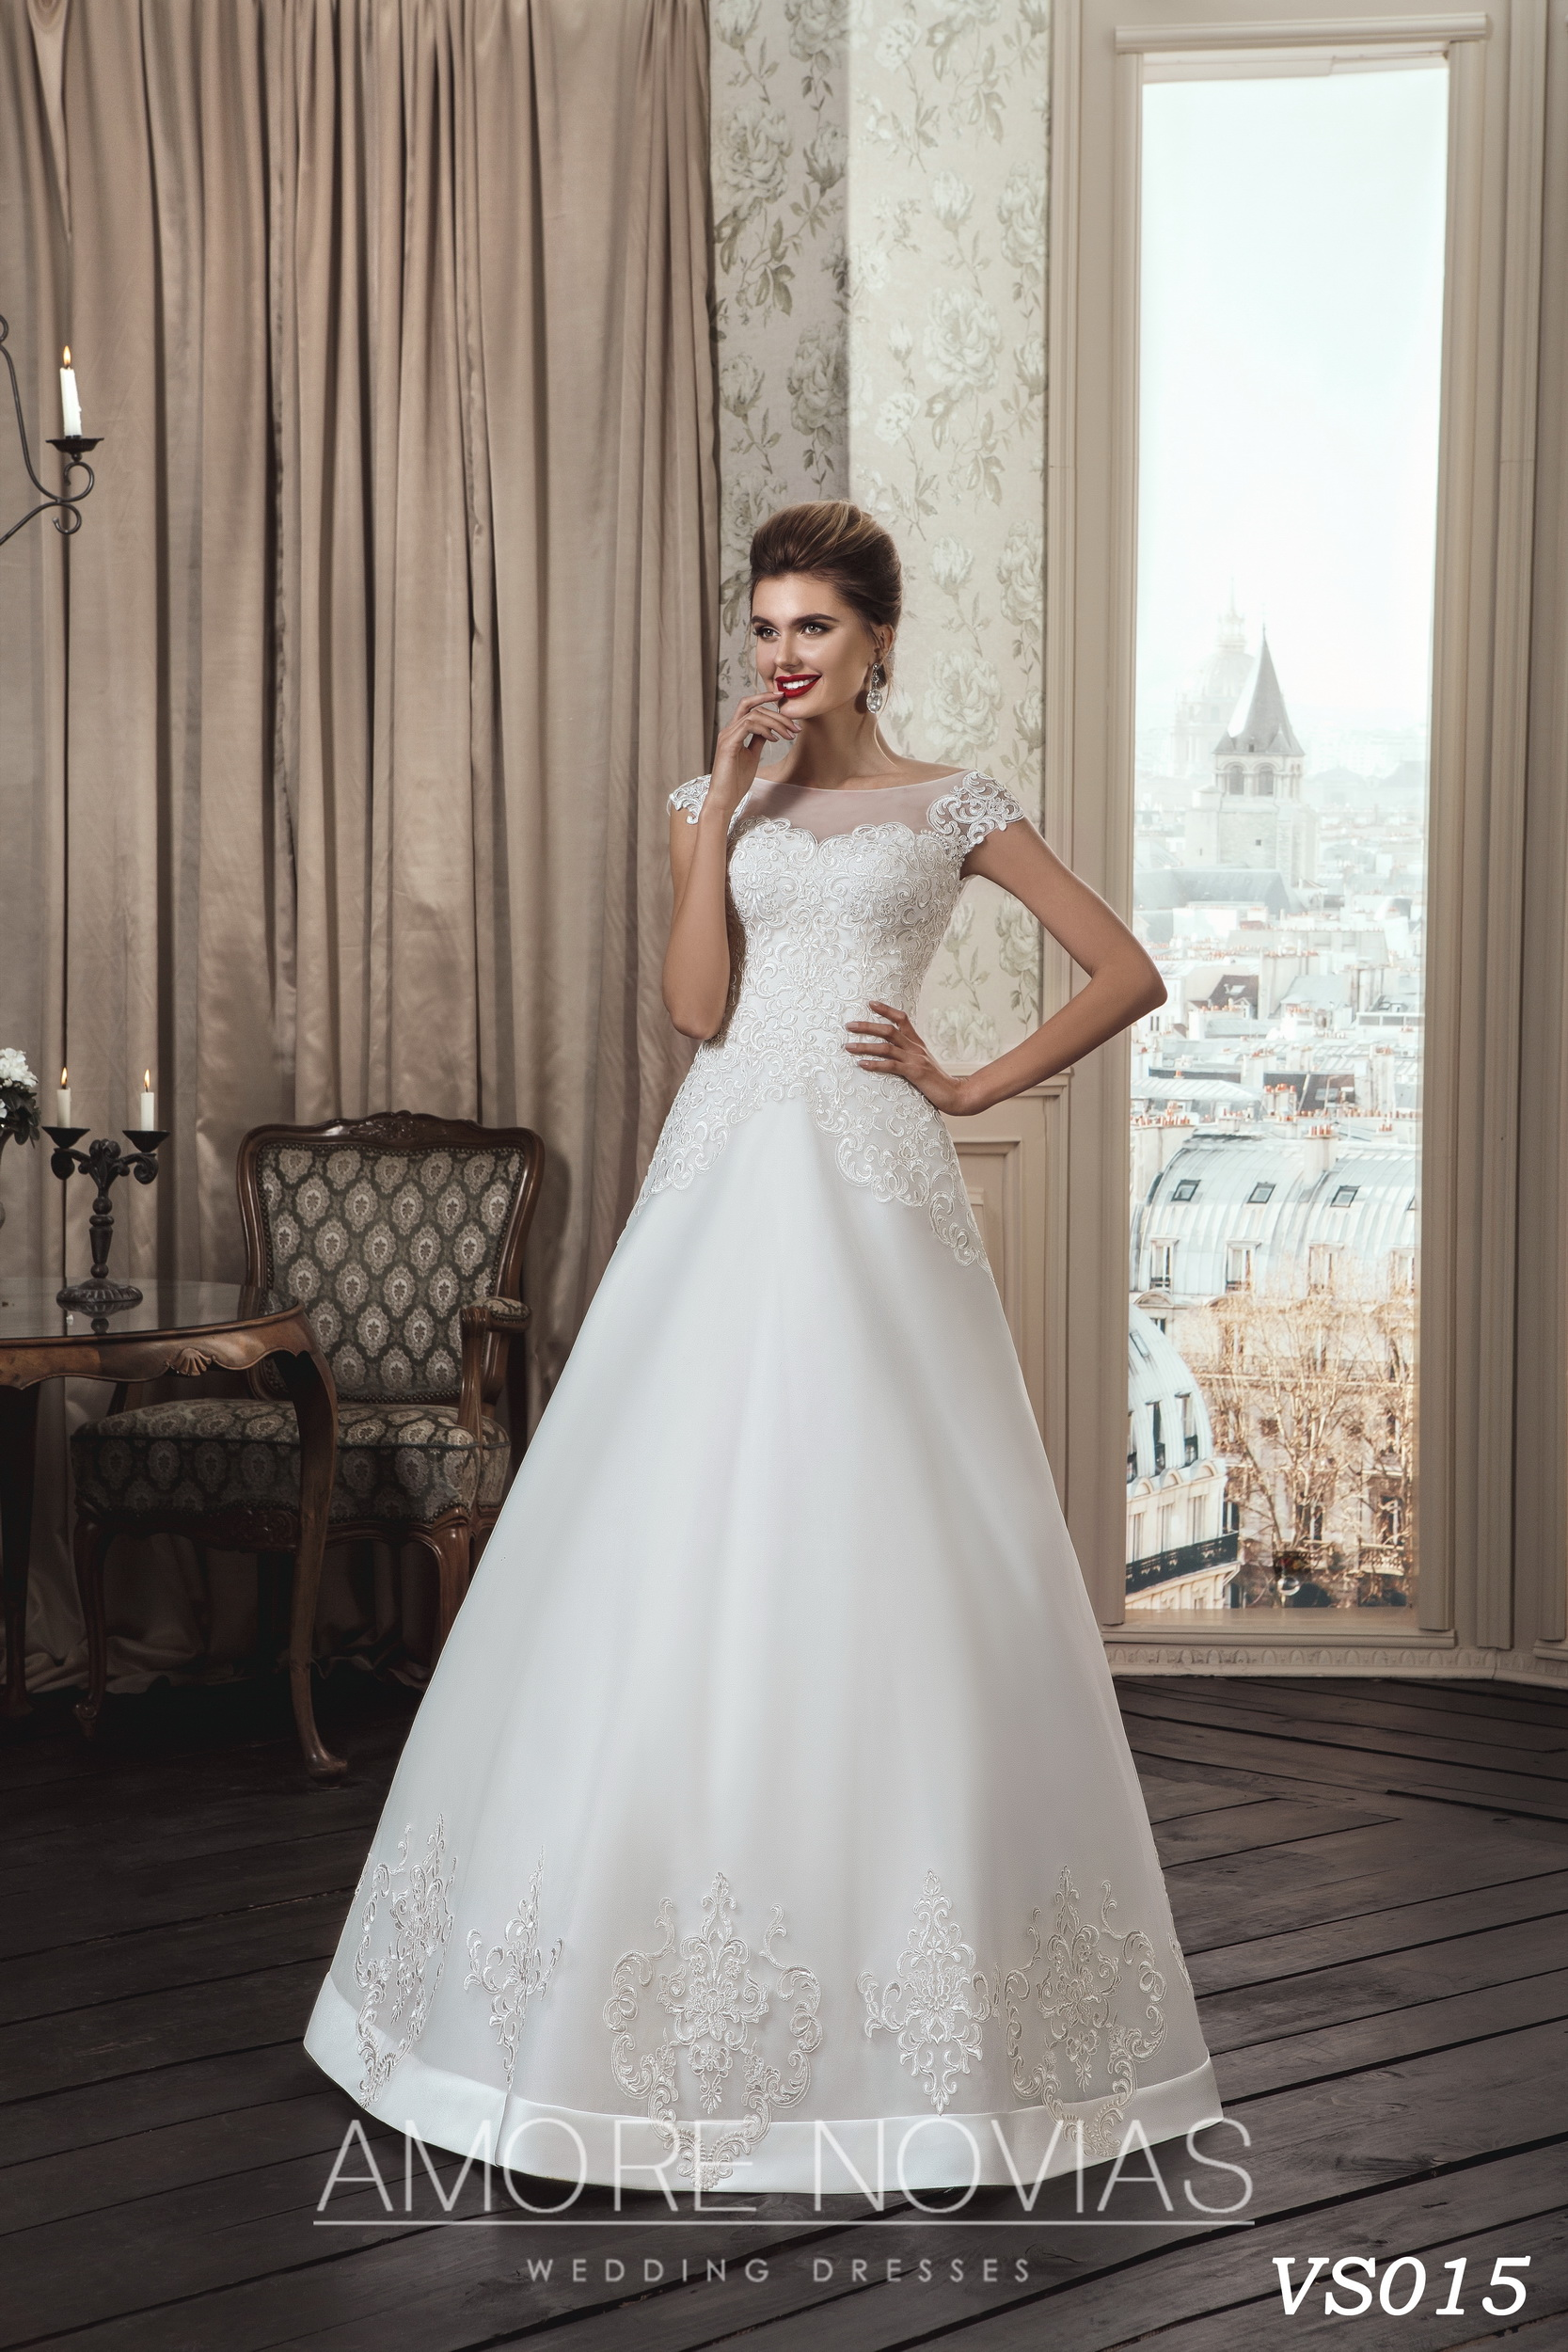 https://amore-novias.com/images/stories/virtuemart/product/vs015.jpg